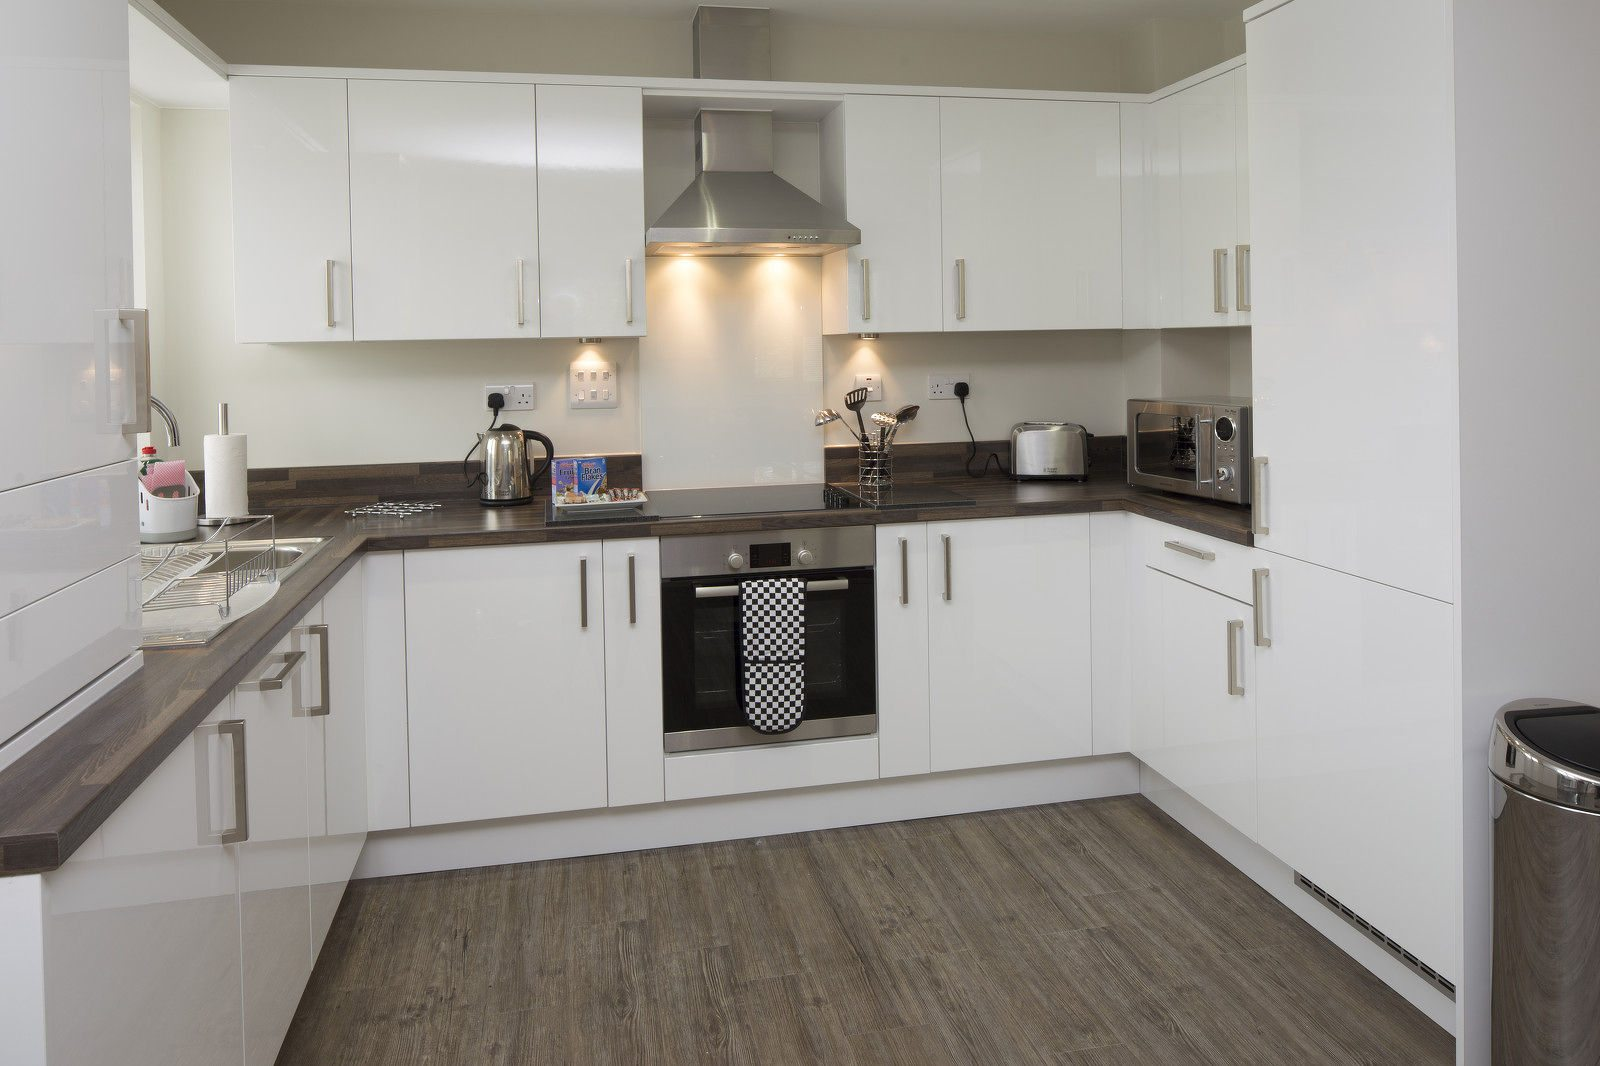 Bracknell-Serviced-Apartments---Beneficial-House-Corporate-Accommodation---self-catering-kitchen-|-Urban-Stay